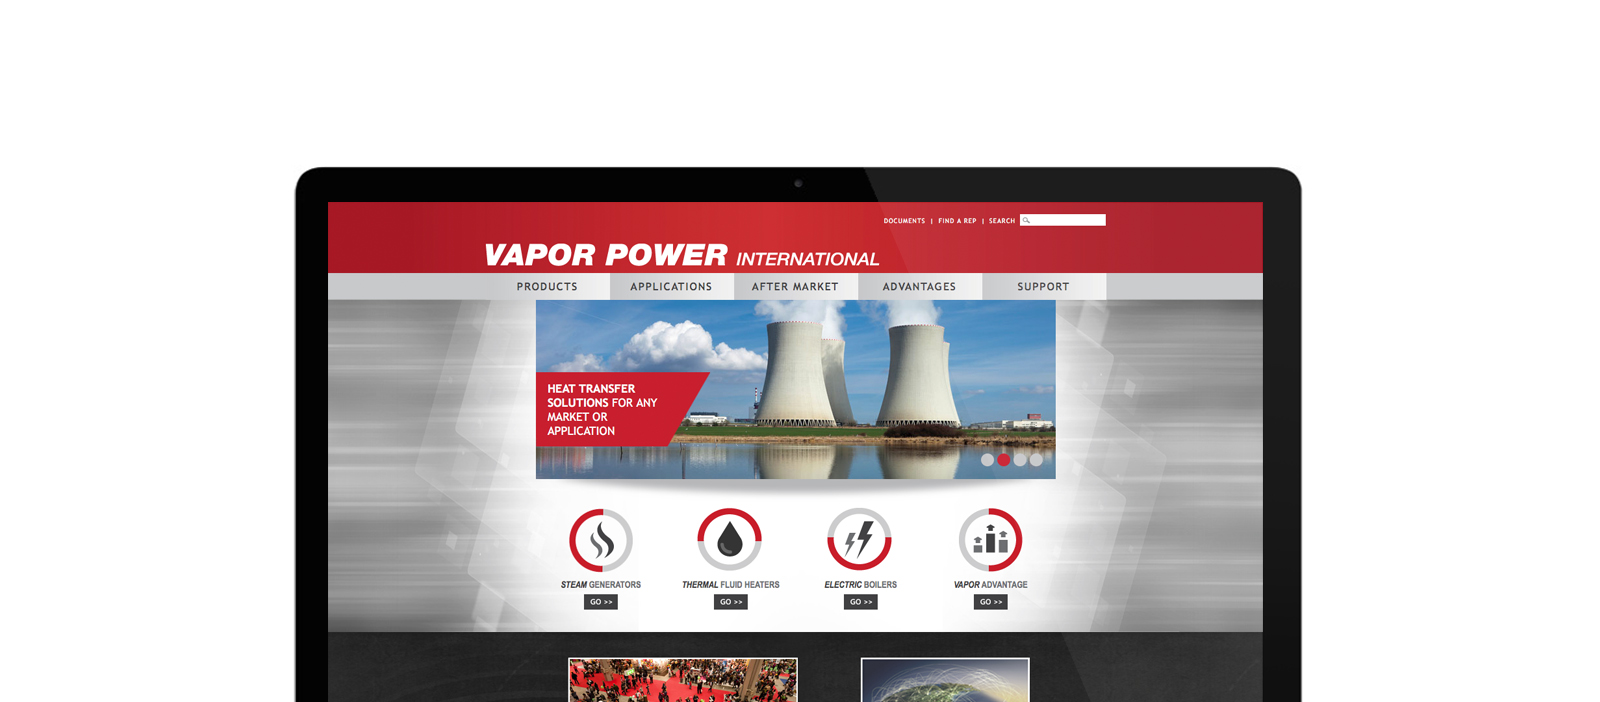 Vapor Power website screenshot